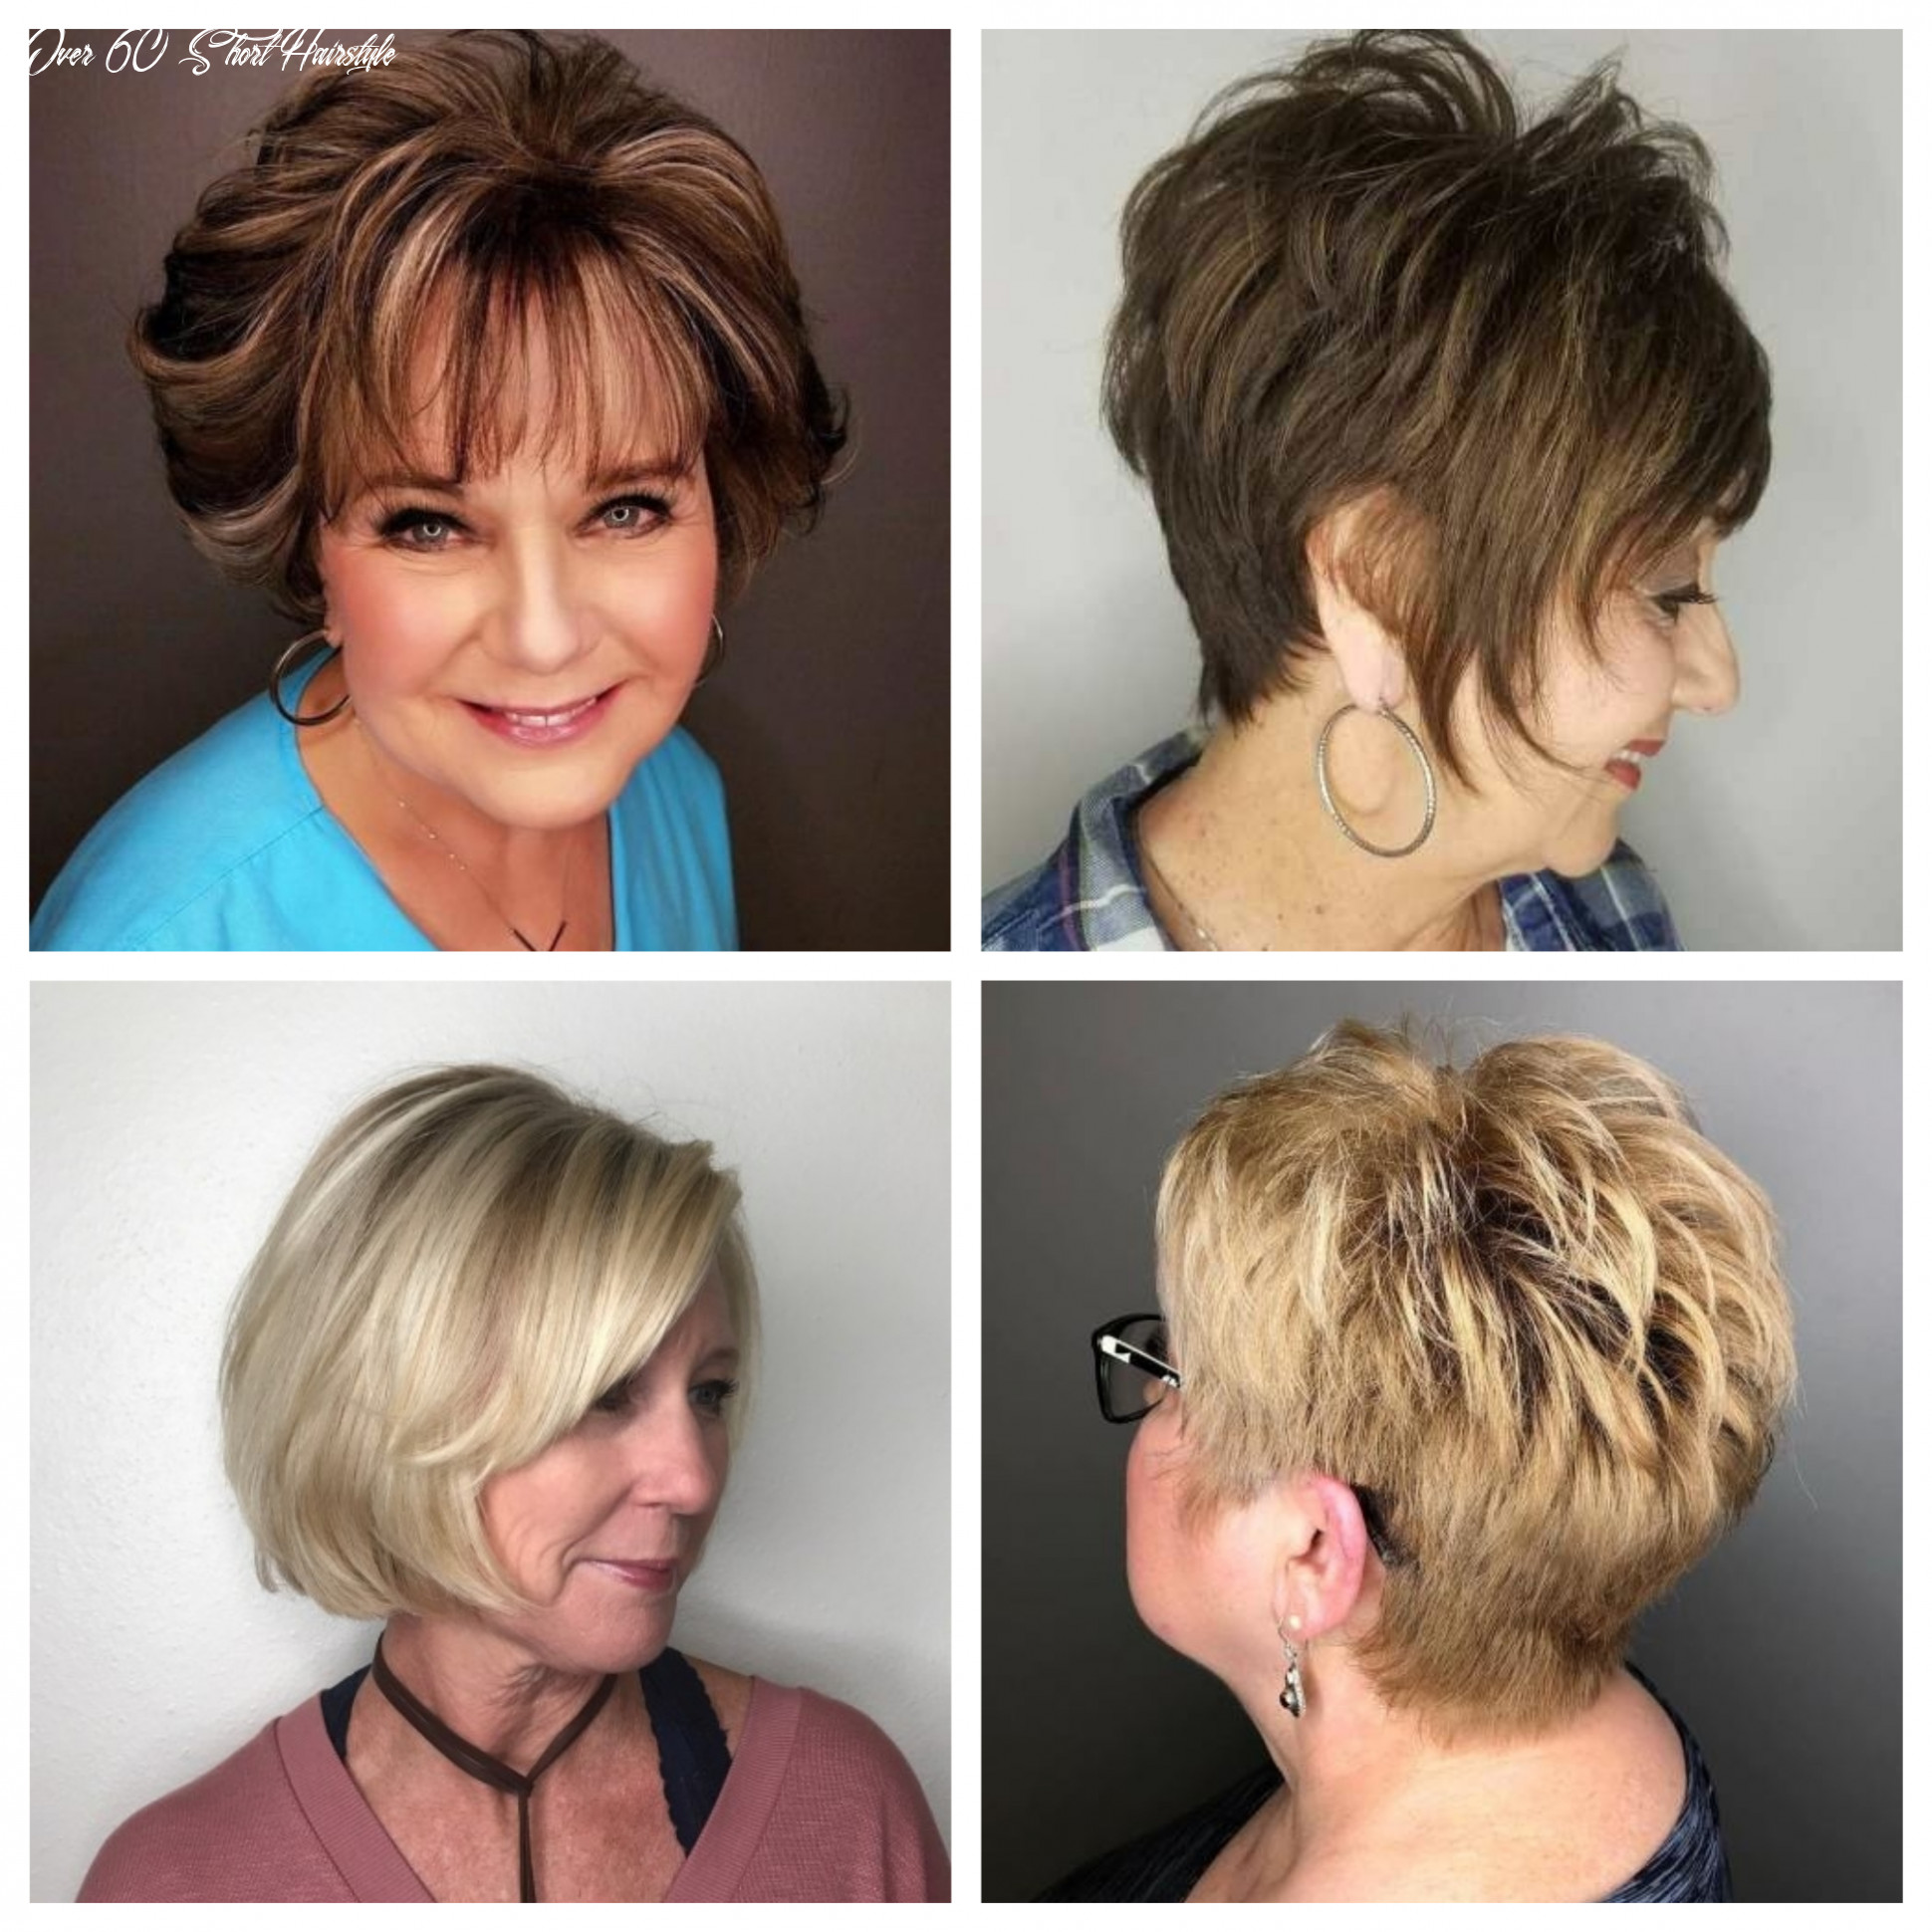 Short hairstyles for women over 10   10 haircuts, hairstyles and